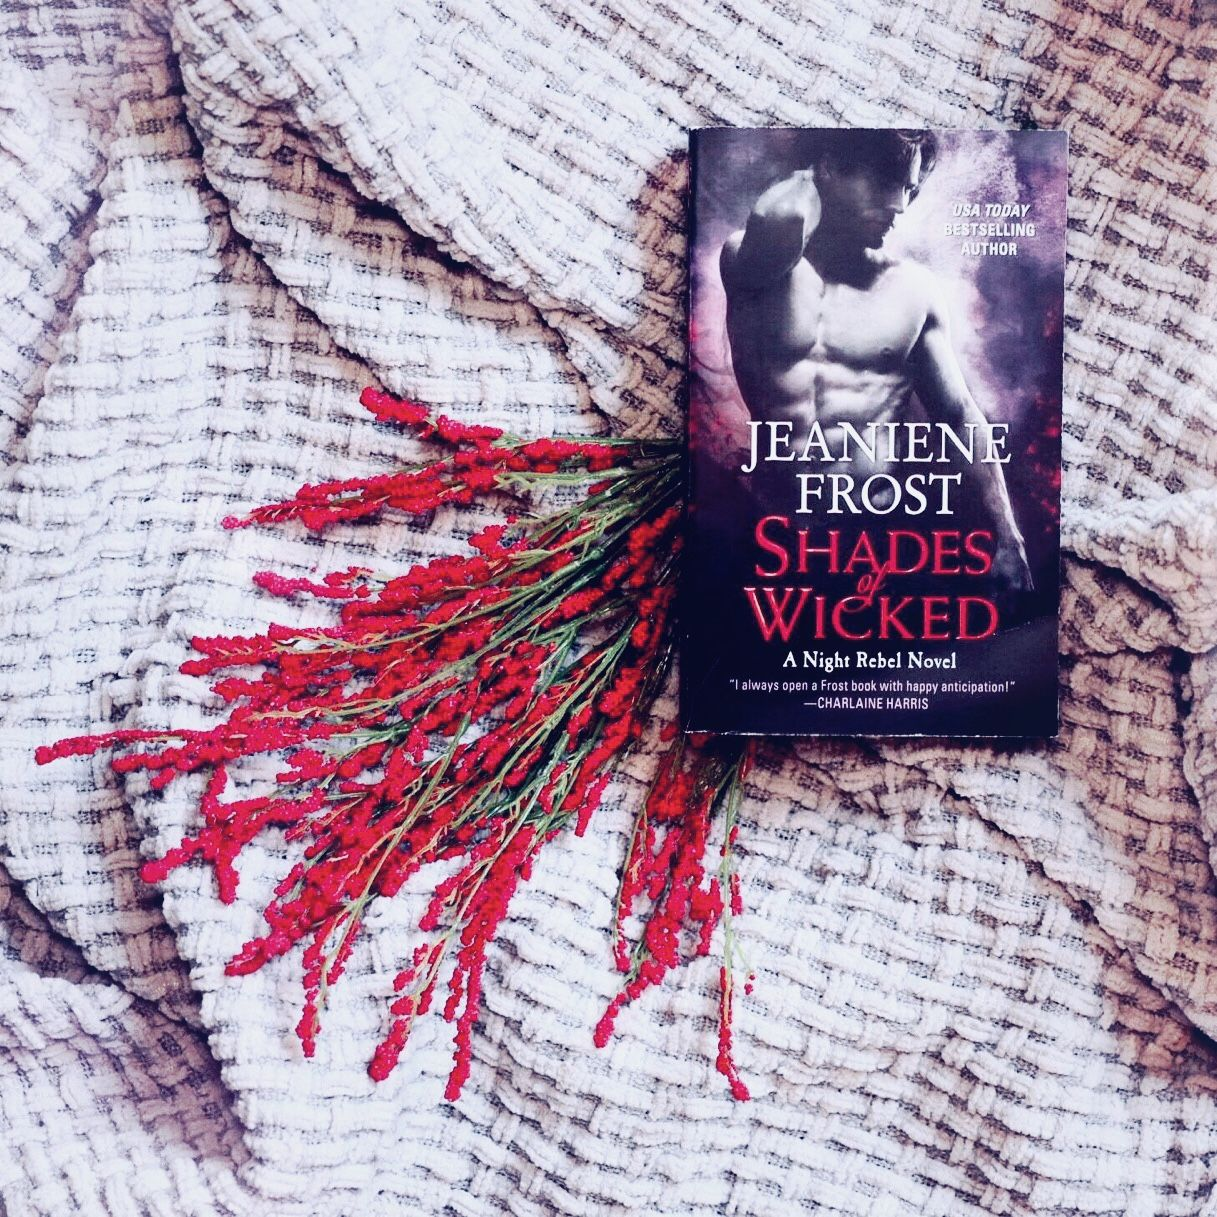 We're spending the week with SHADES OF WICKED by Jeaniene Frost! The